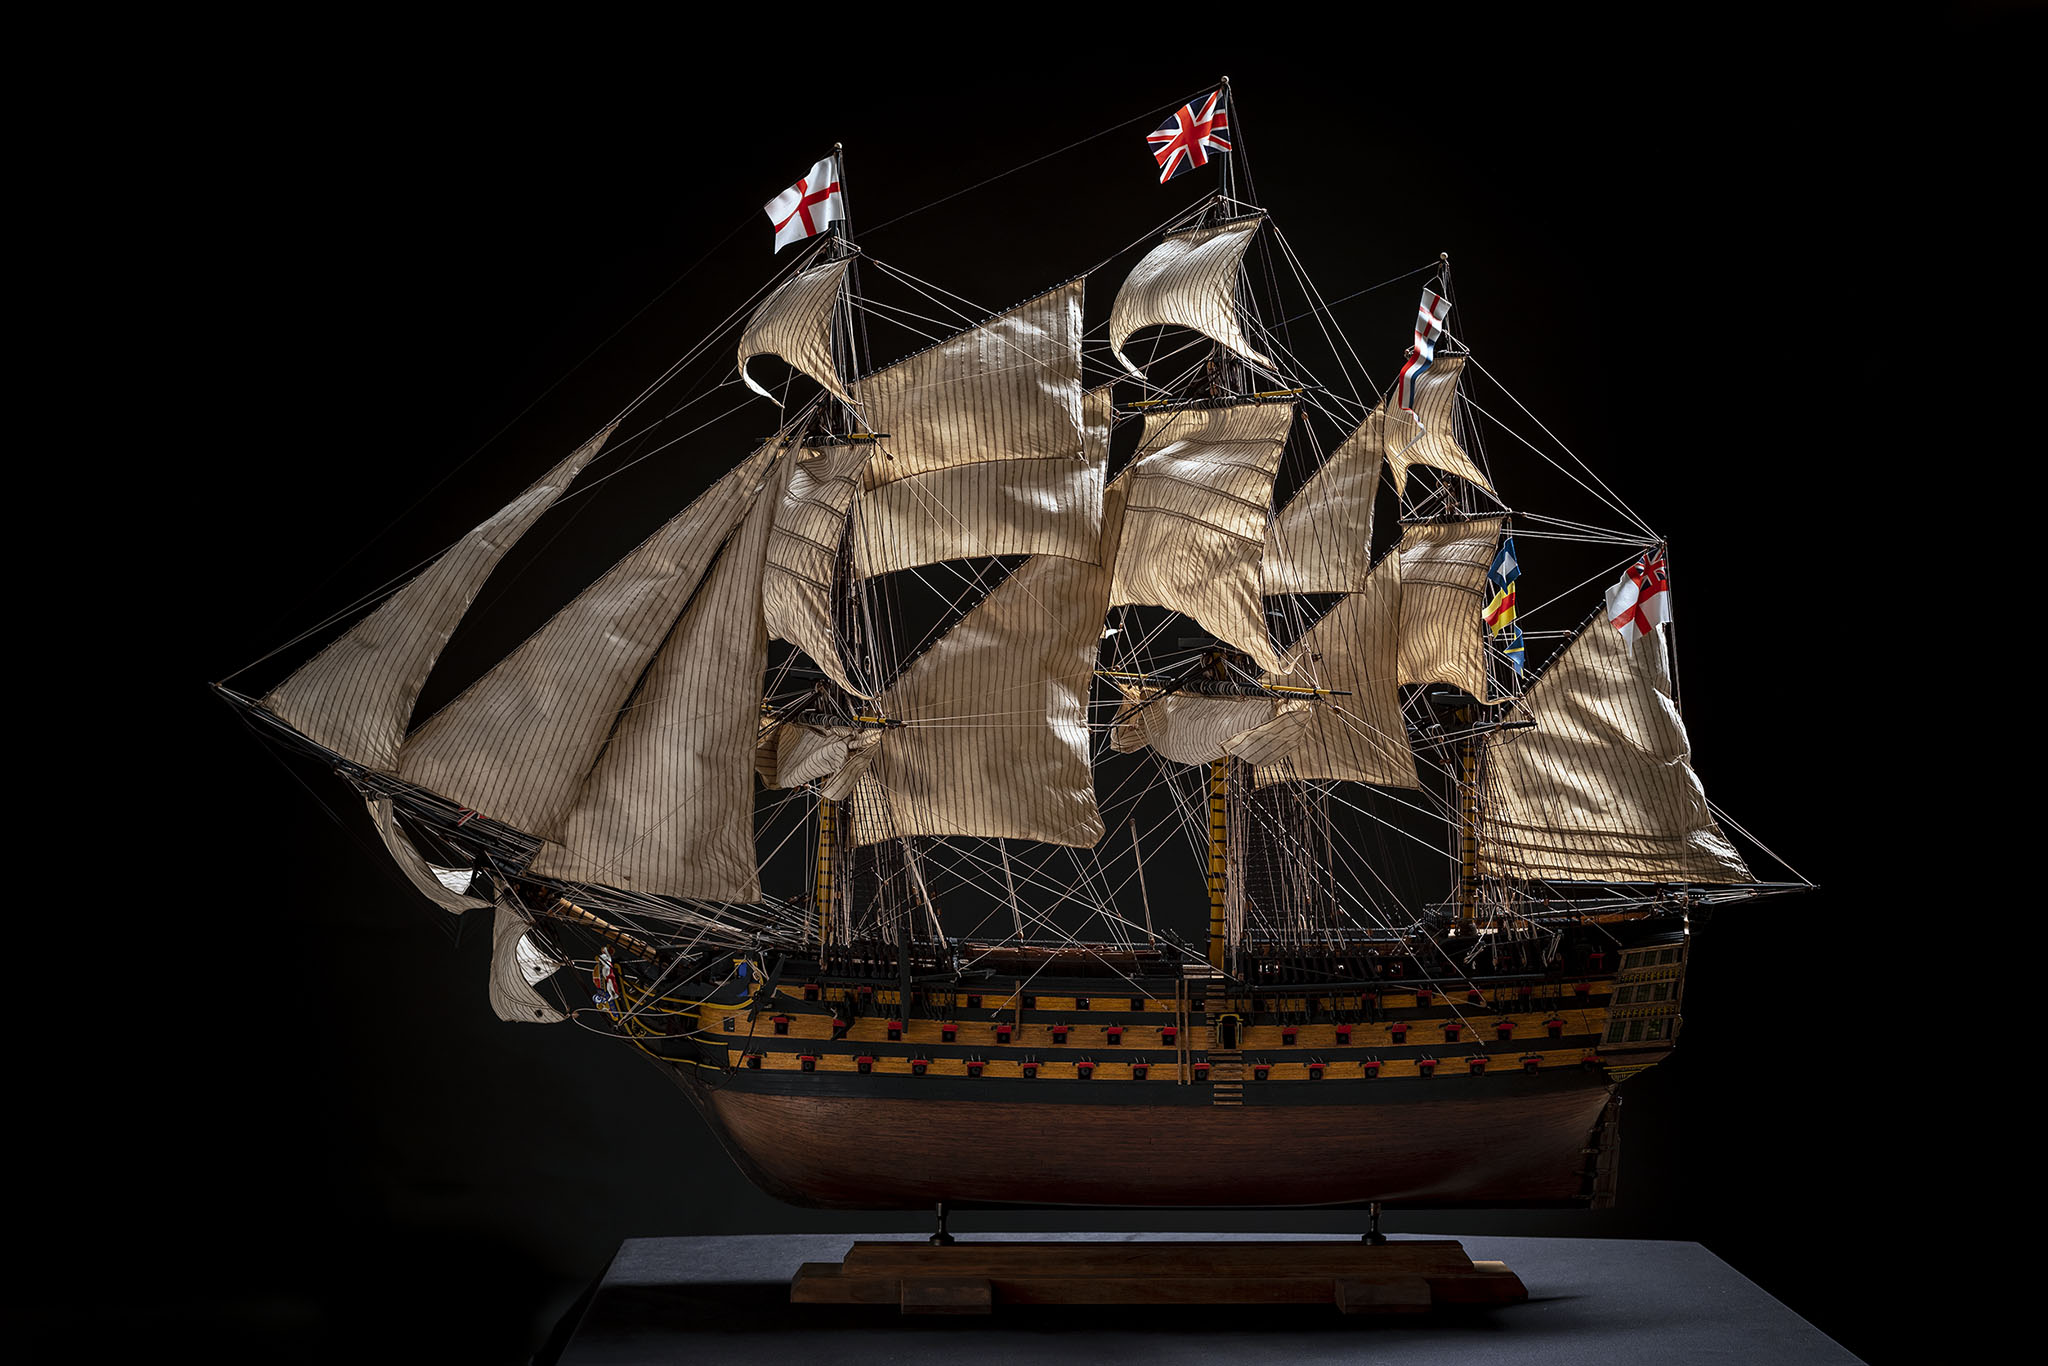 H.M.S. VICTORY - 1765 (Scale 1:84)